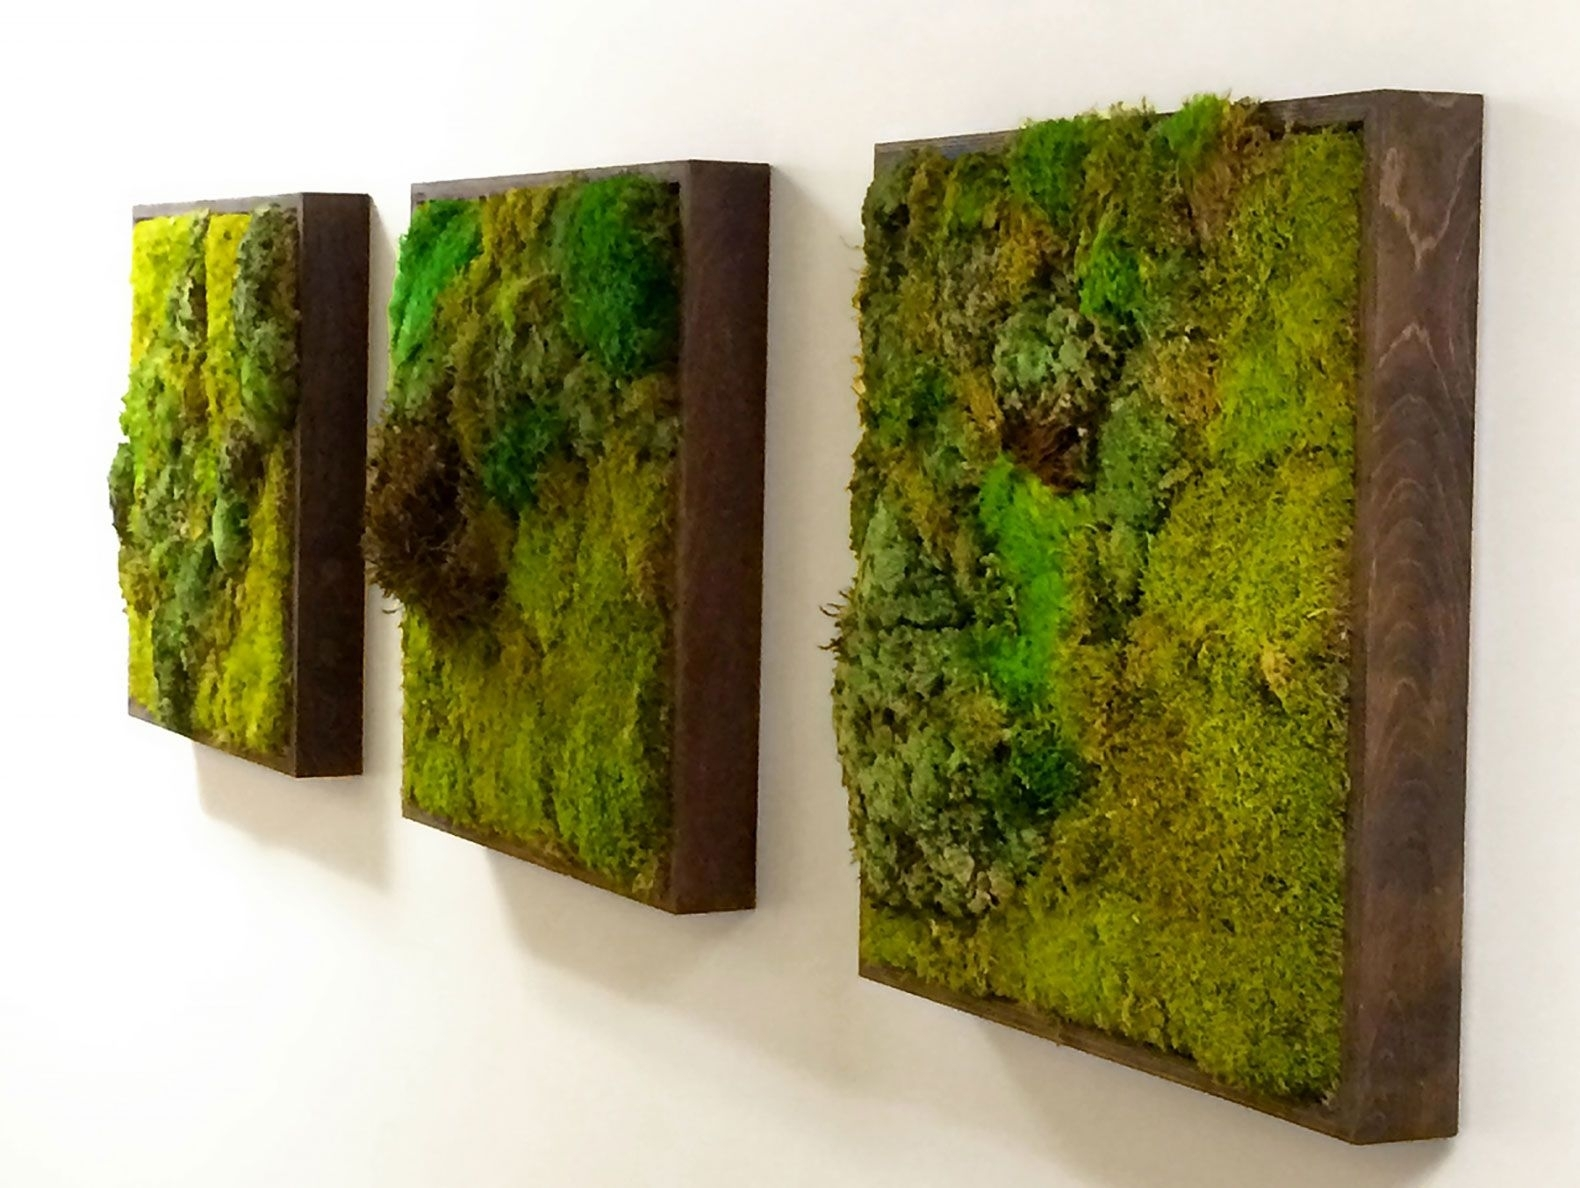 Moss Walls: The Newest Trend In Biophilic Interiors | Moss Wall Intended For 2018 Green Wall Accents (View 13 of 15)